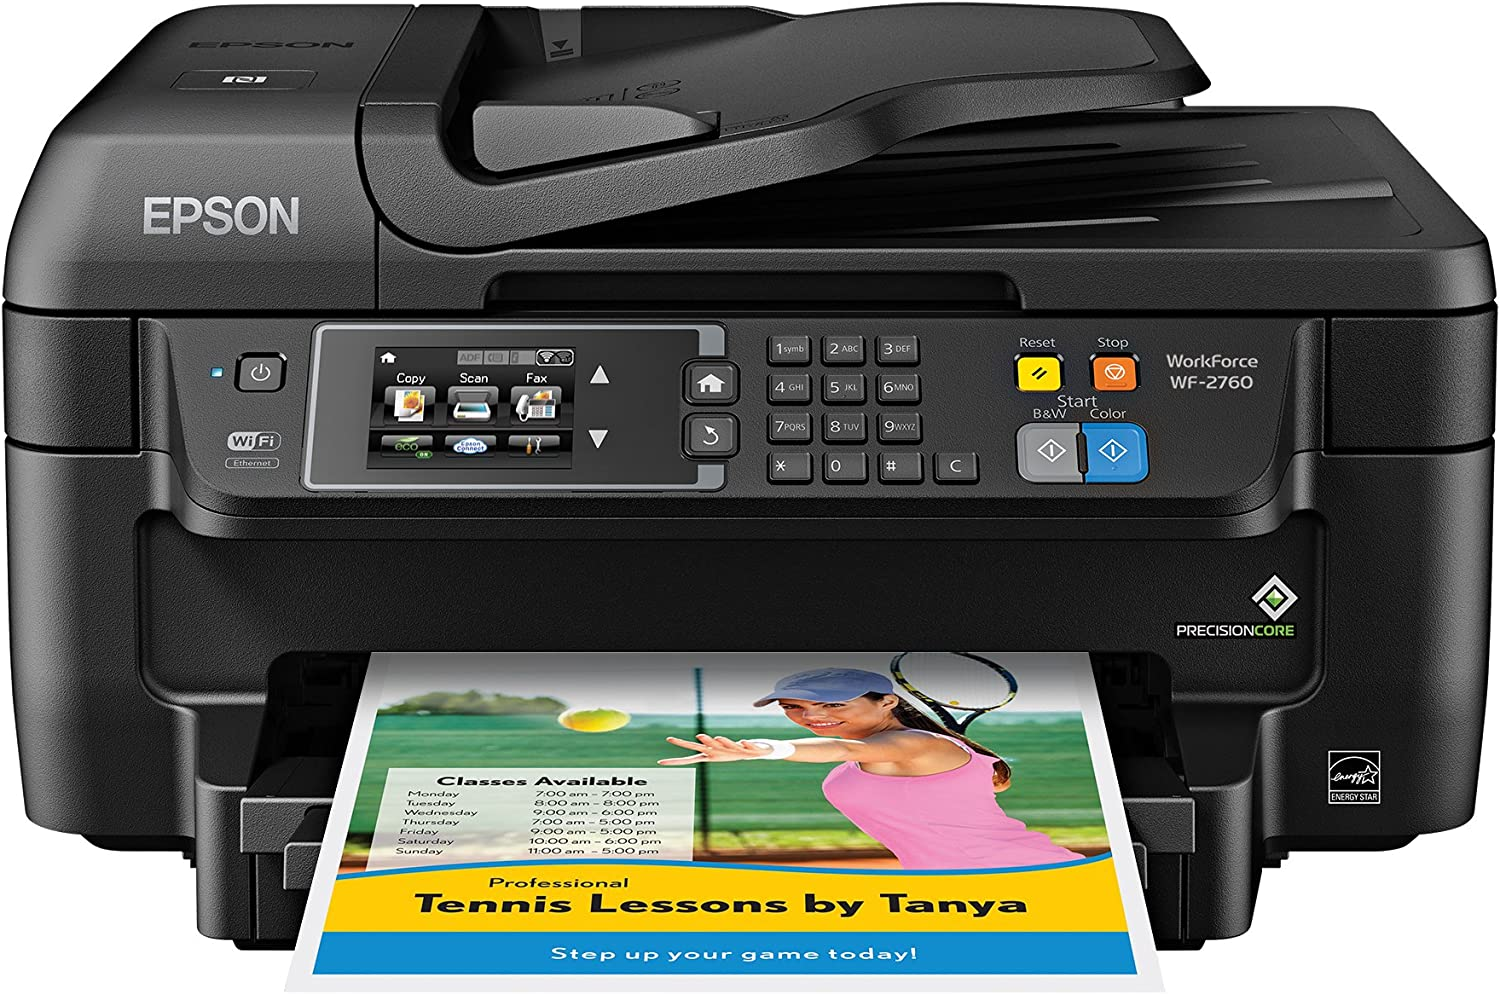 Epson WF-2760 All-in-One Wireless Color Printer